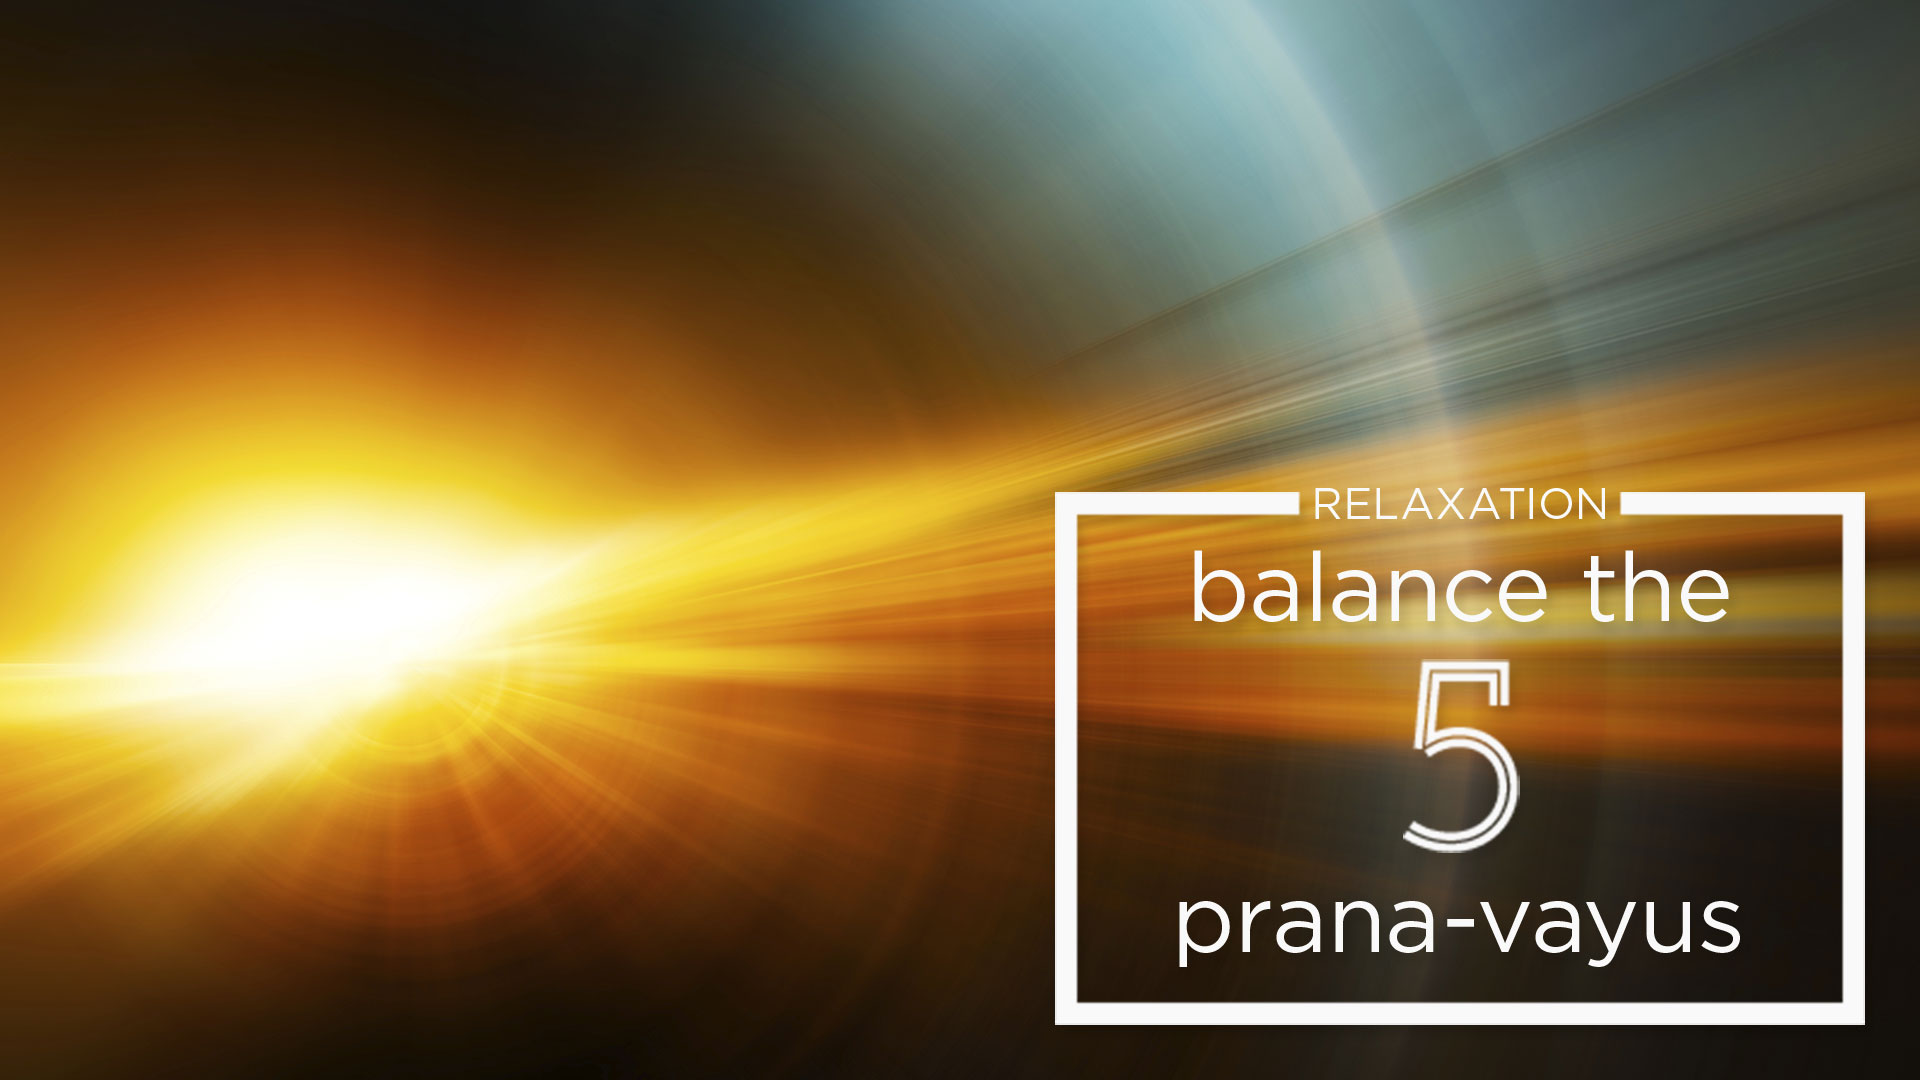 relaxation practice to balance the 5 prana vayus